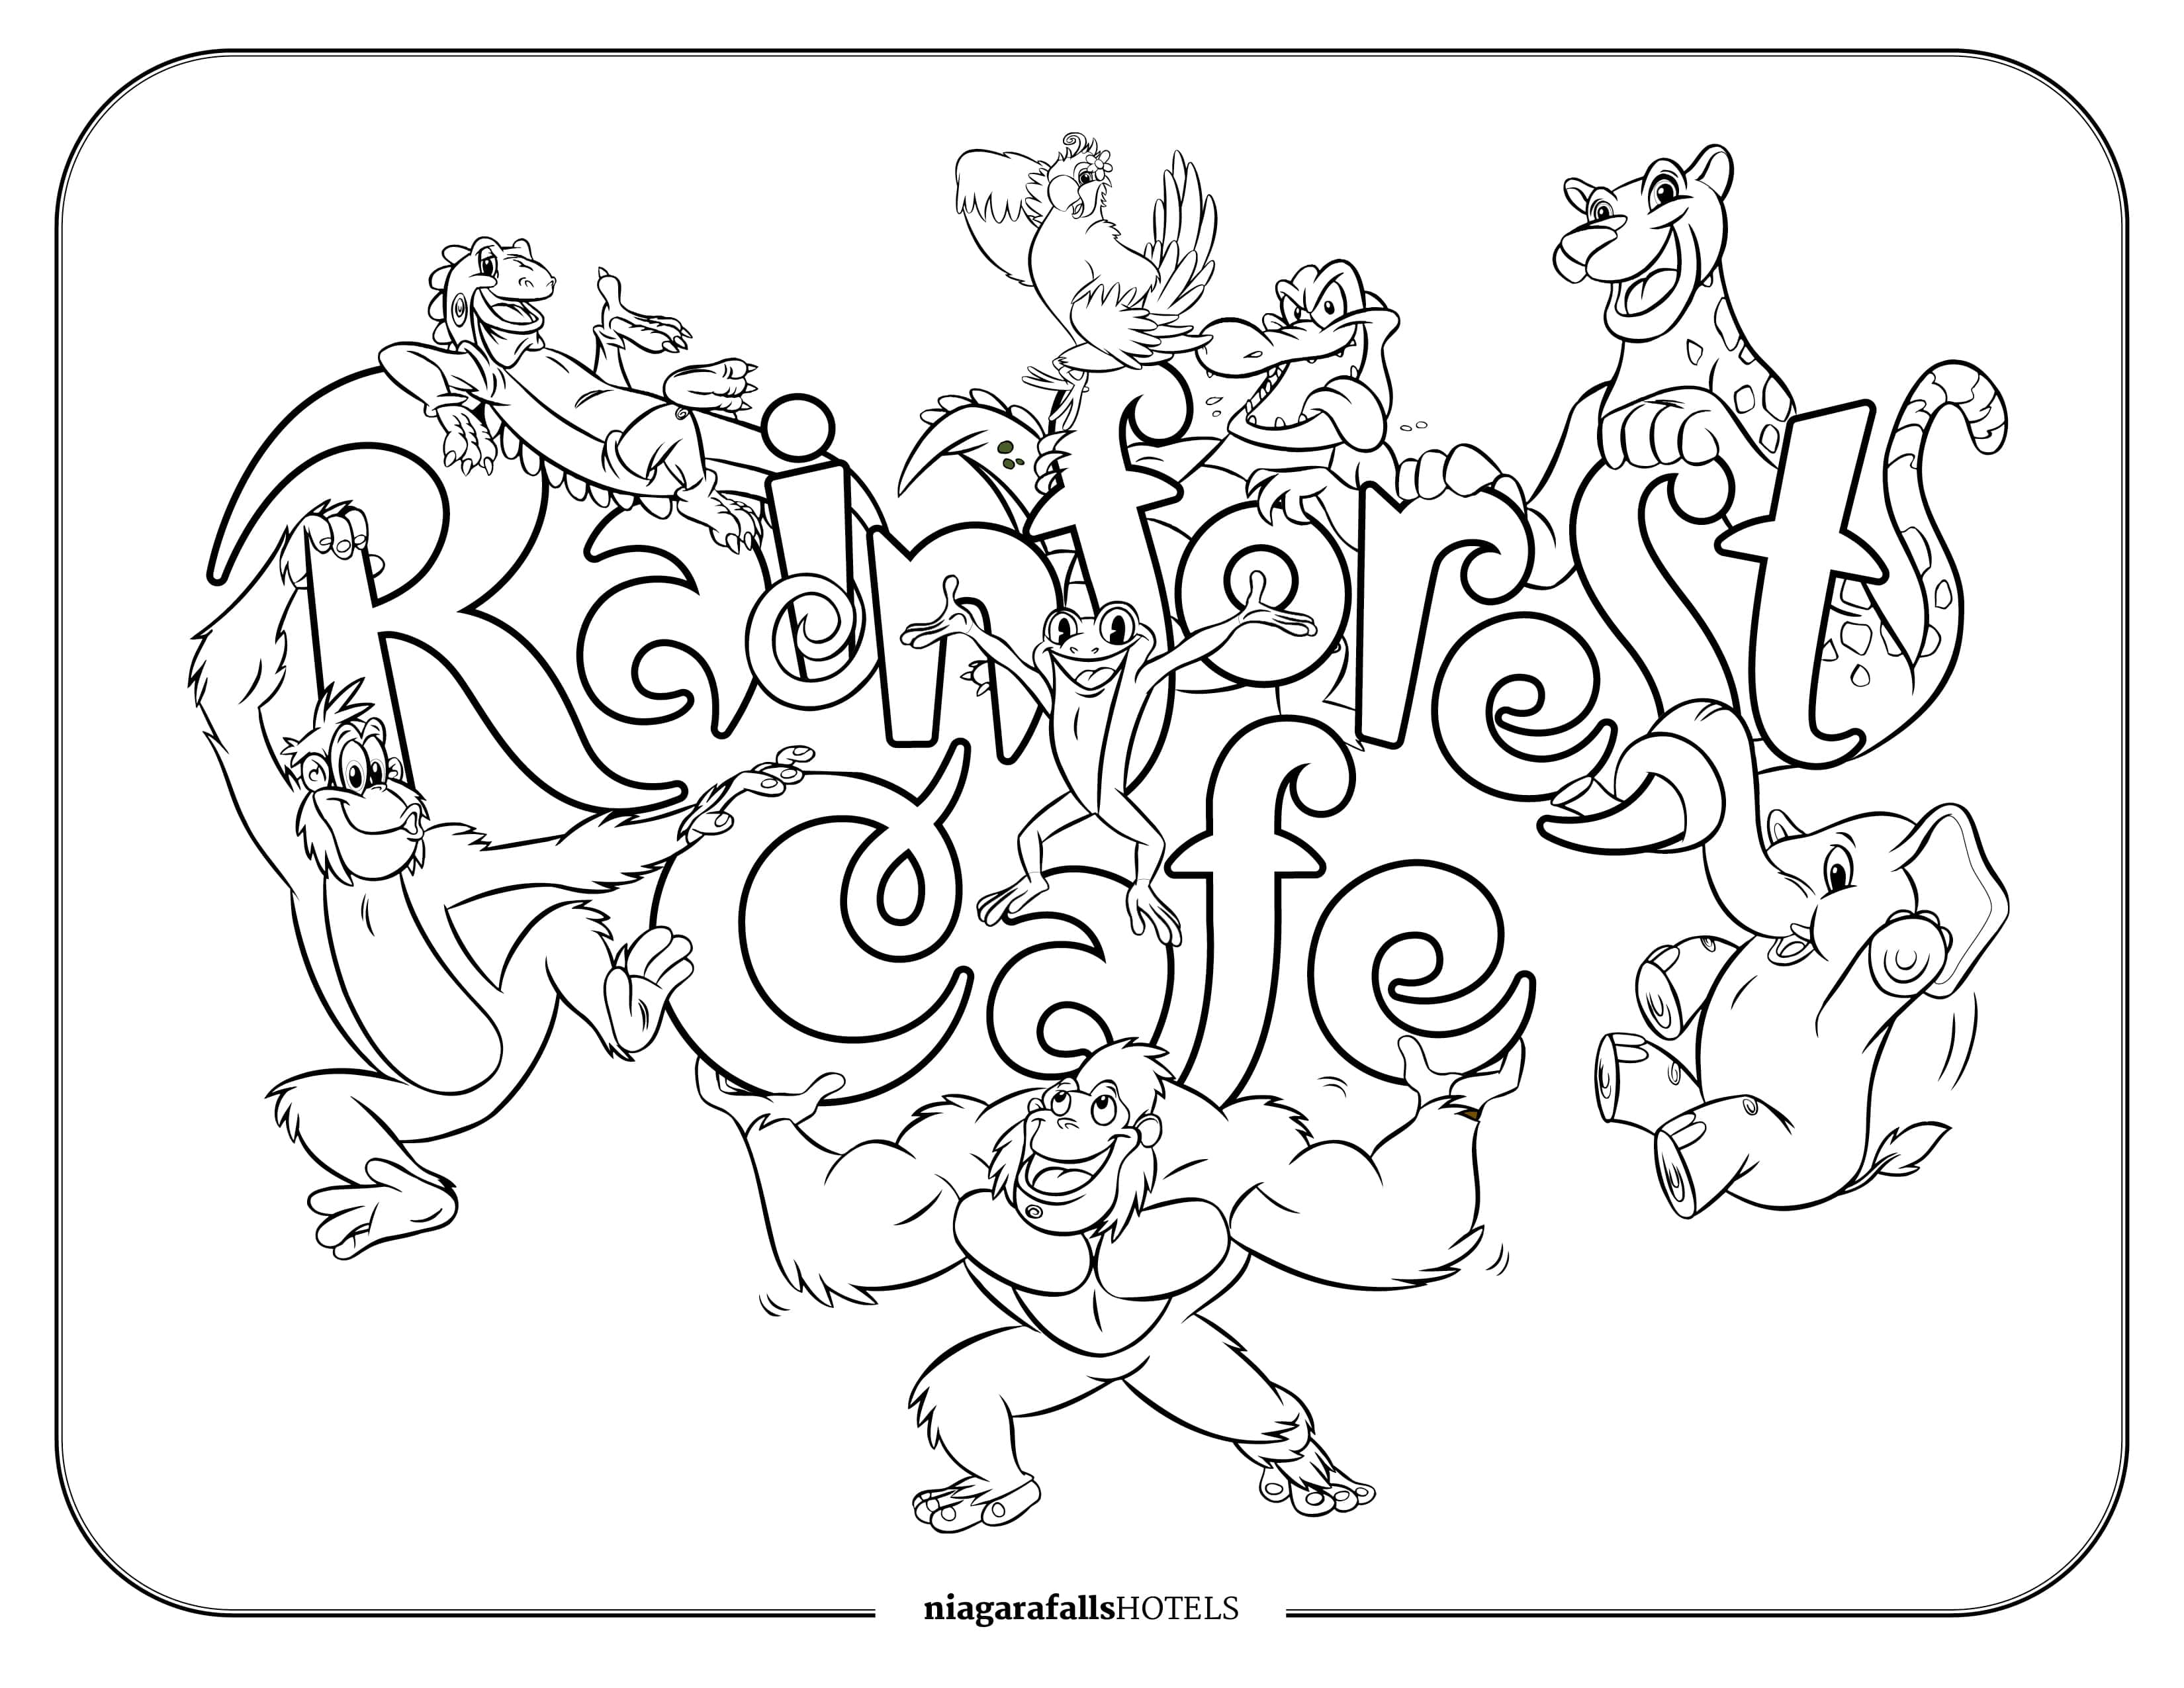 Rainforest Cafe Colouring Page